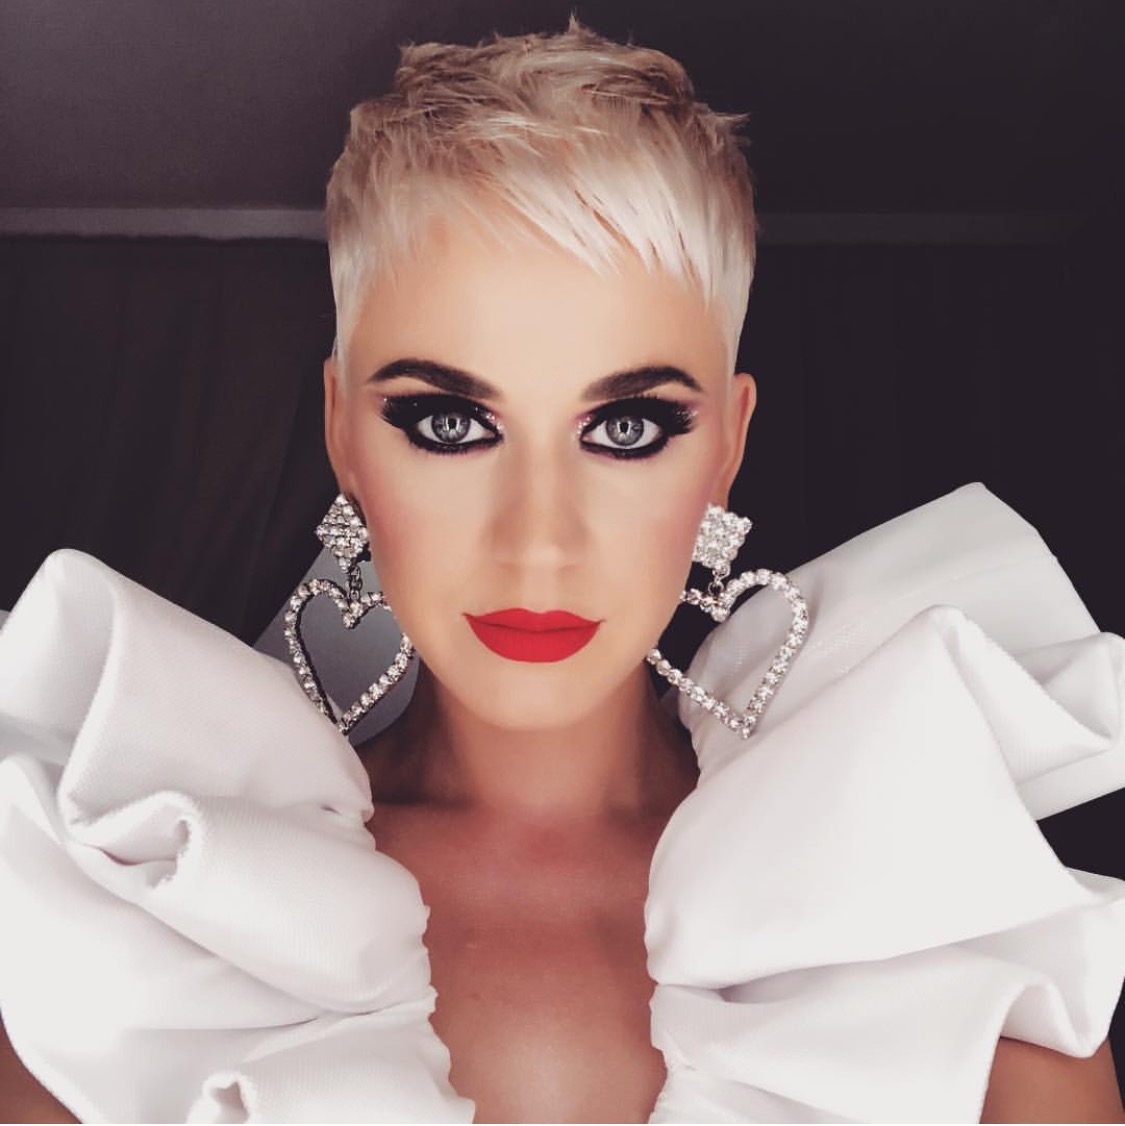 Katy Perry's Shoe Line Is Full of Party-Ready Looks Perfect for the Holidays